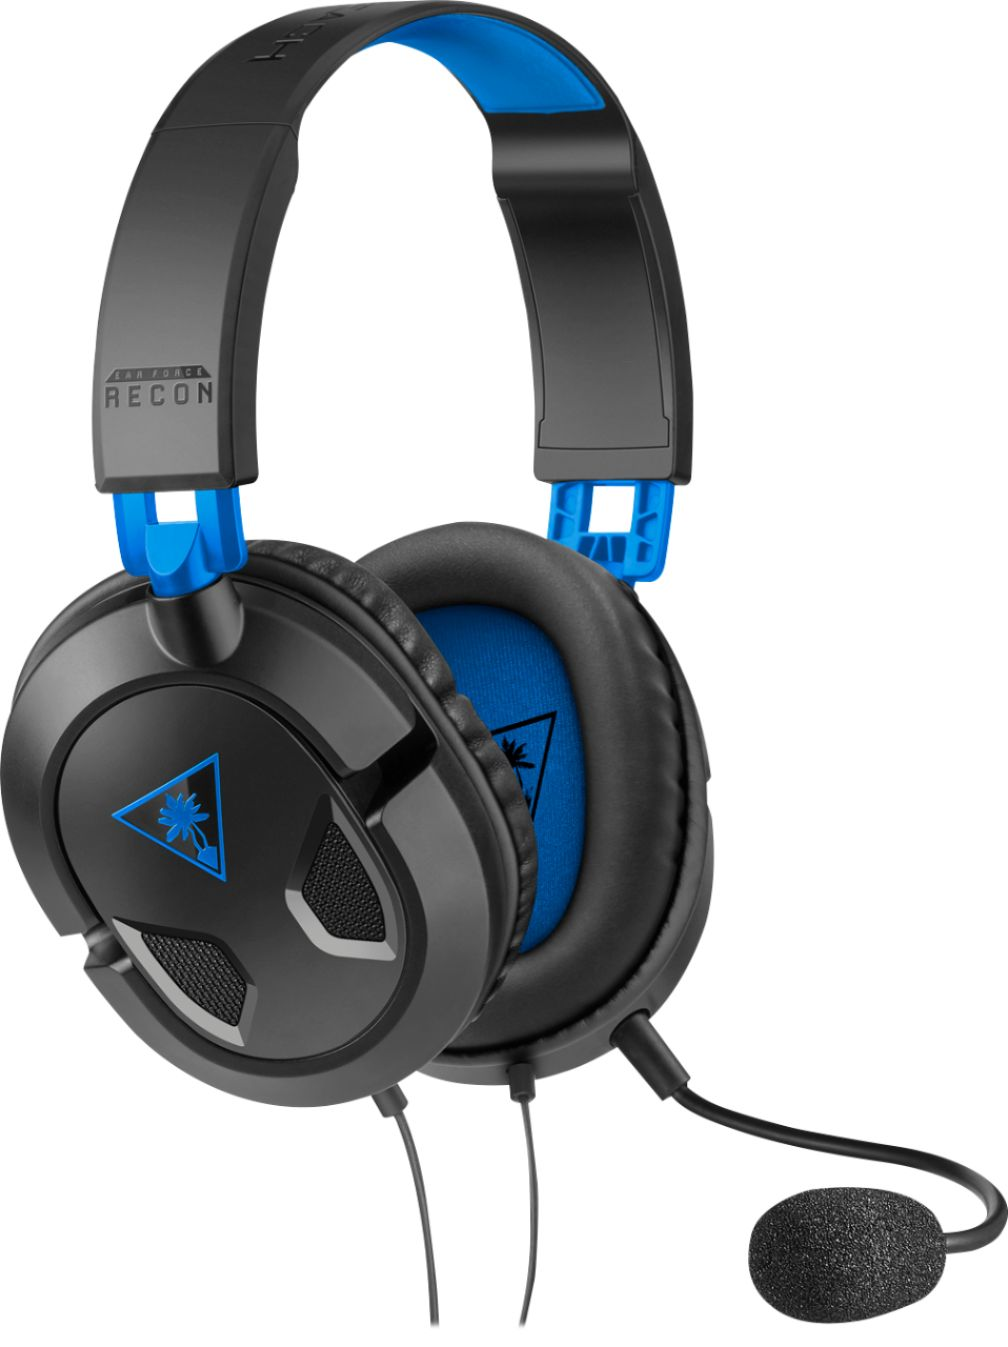 hight resolution of turtle beach recon 50p wired stereo gaming headset black blue tbs 3303 01 best buy